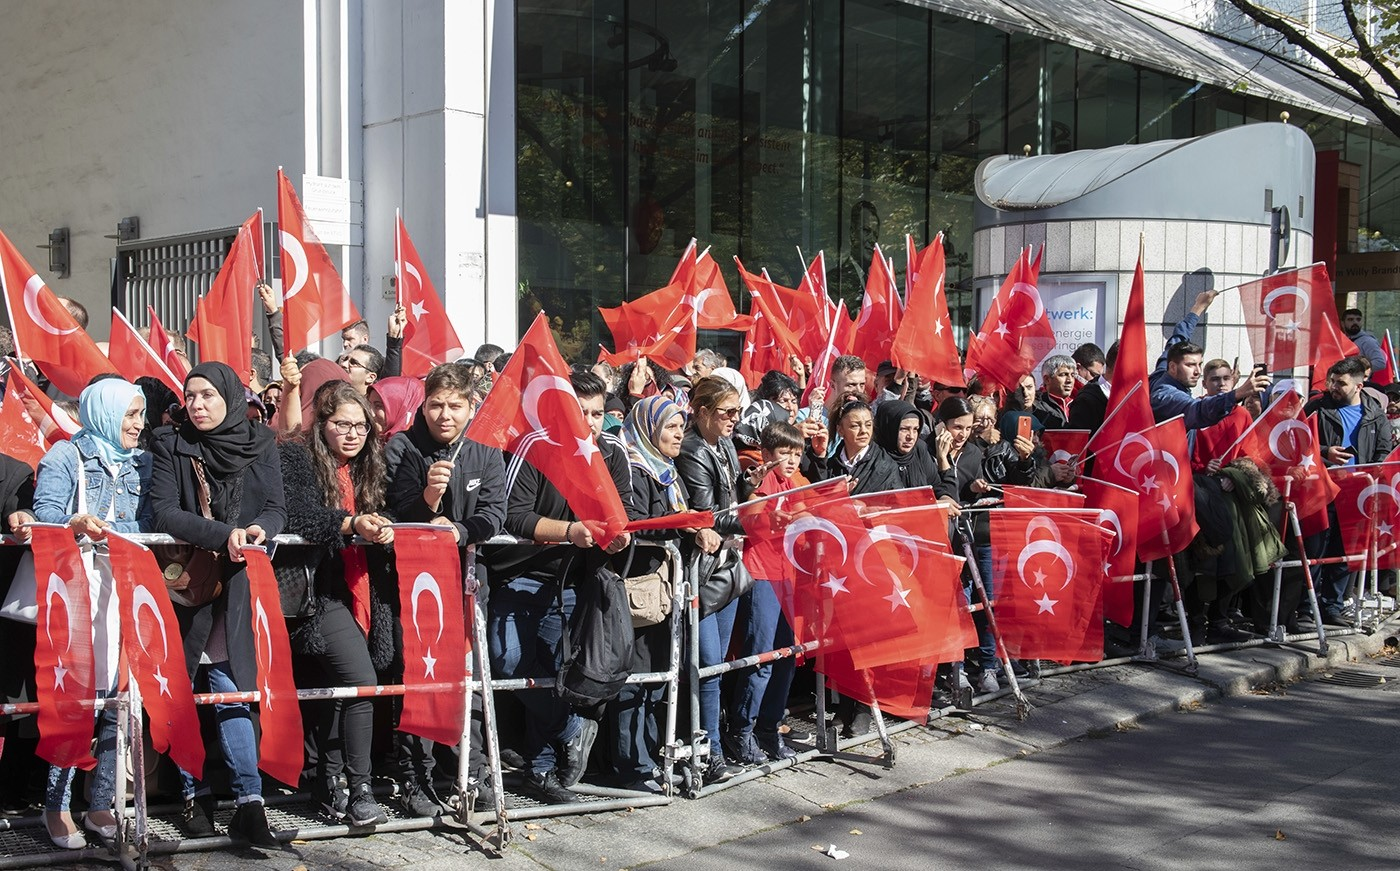 Fans of Turkish President Recep Tayyip Erdoğan hold Turkish flags while waiting for his arrival to a hotel in Berlin Thursday, Sept. 27, 2018. (AP Photo)